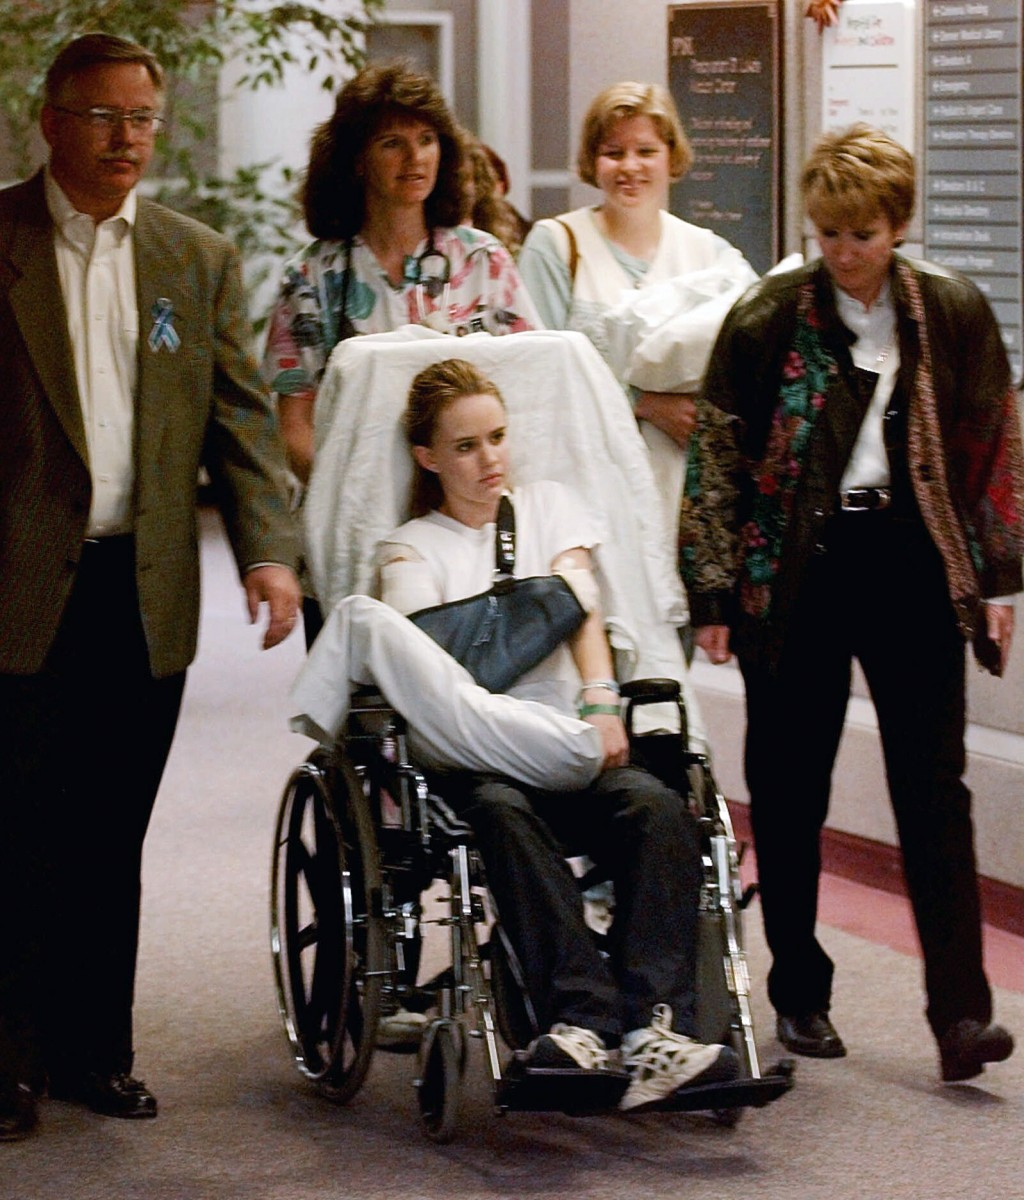 FILE - In this May 1, 1999, file photo, Kacey Ruegsegger, 17, is wheeled from a Denver hospital by Patty Anderson, center, after being released. Walki